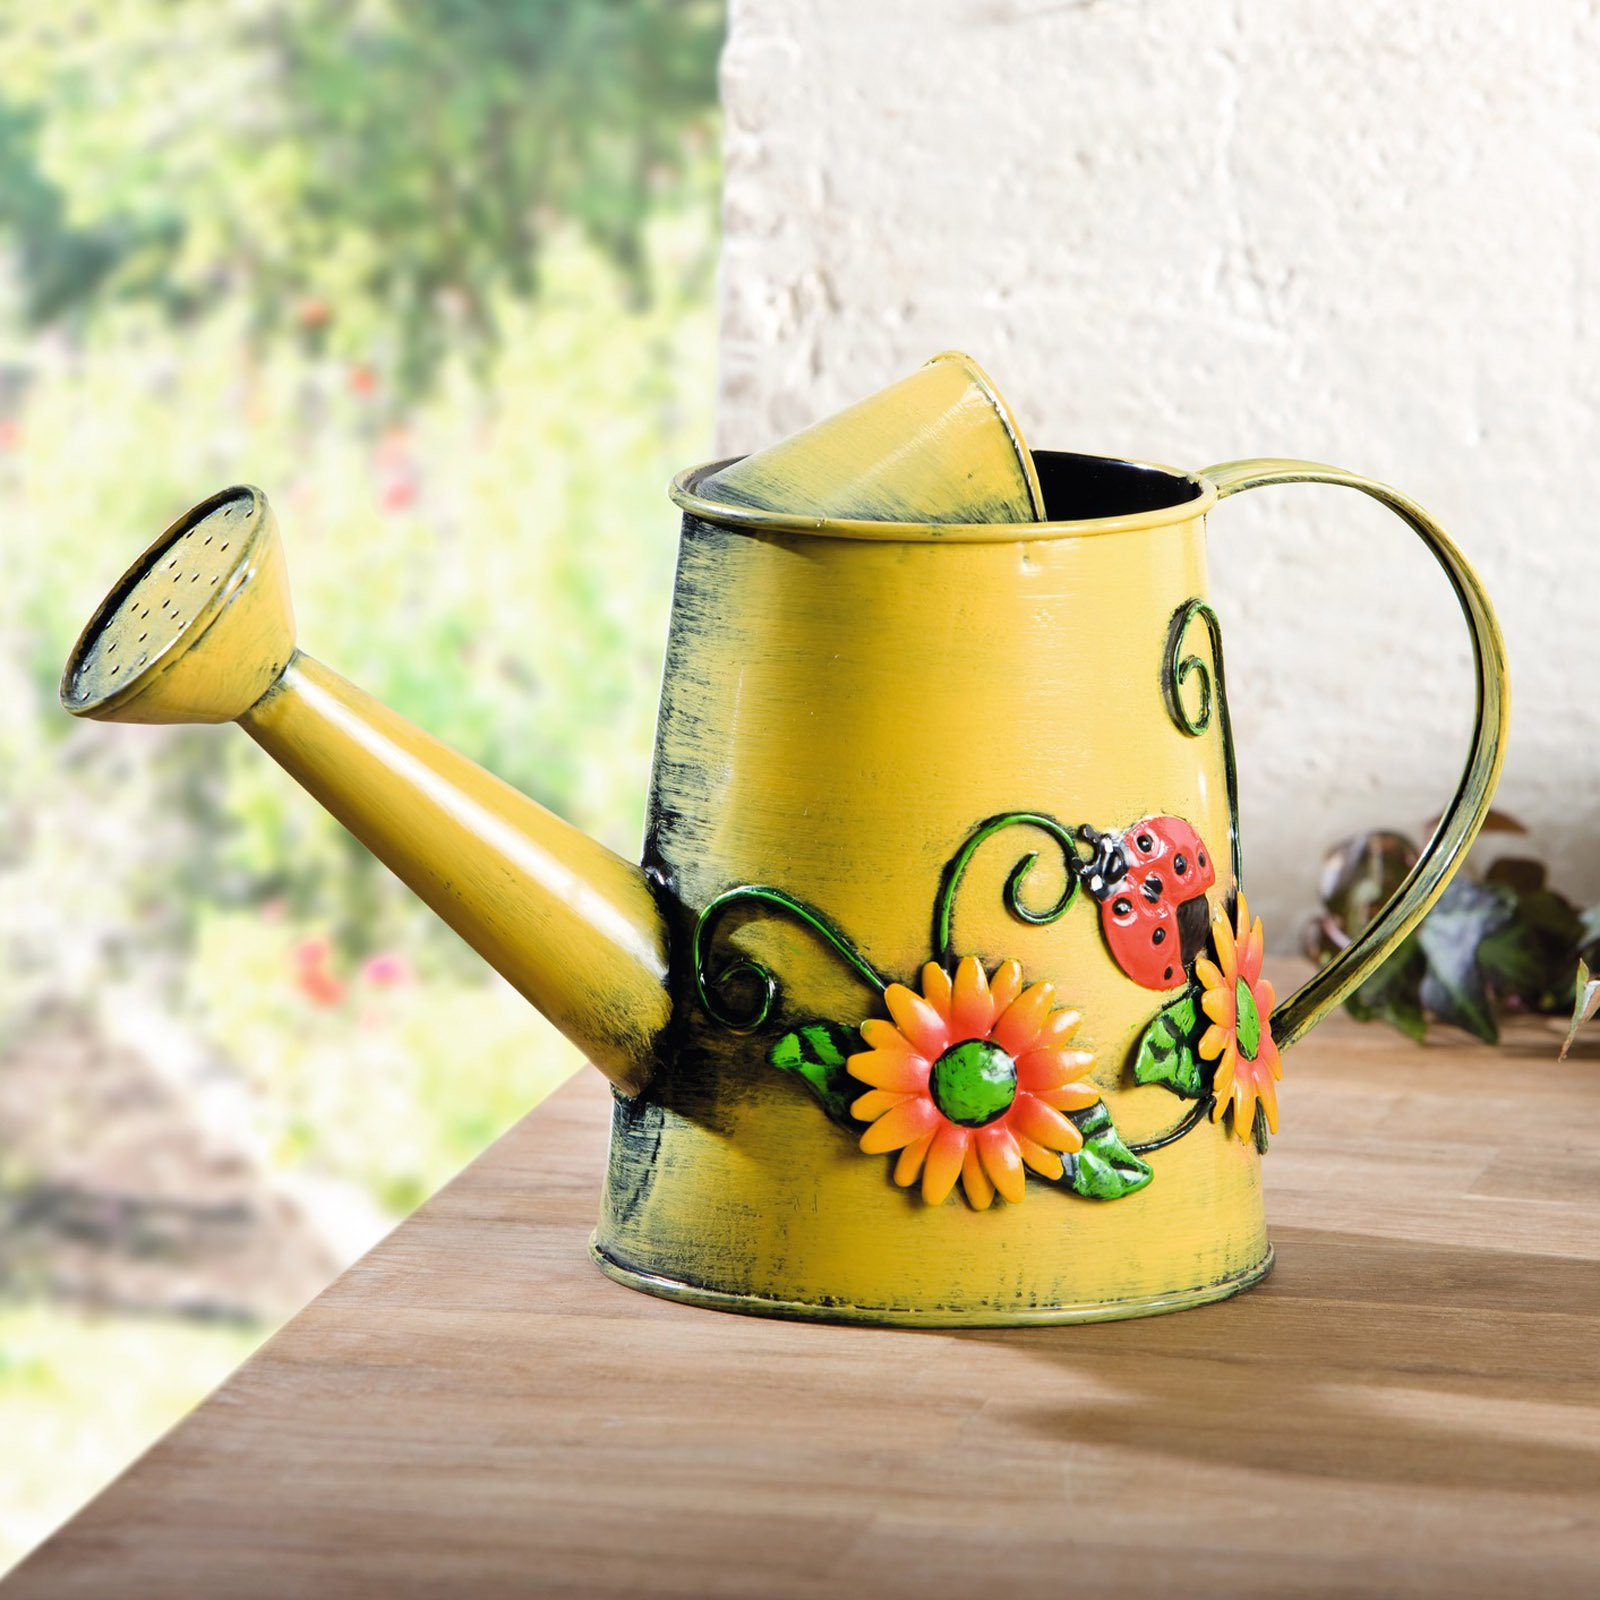 HGC Decorative Sunflower & Ladybug Metal Watering Can by